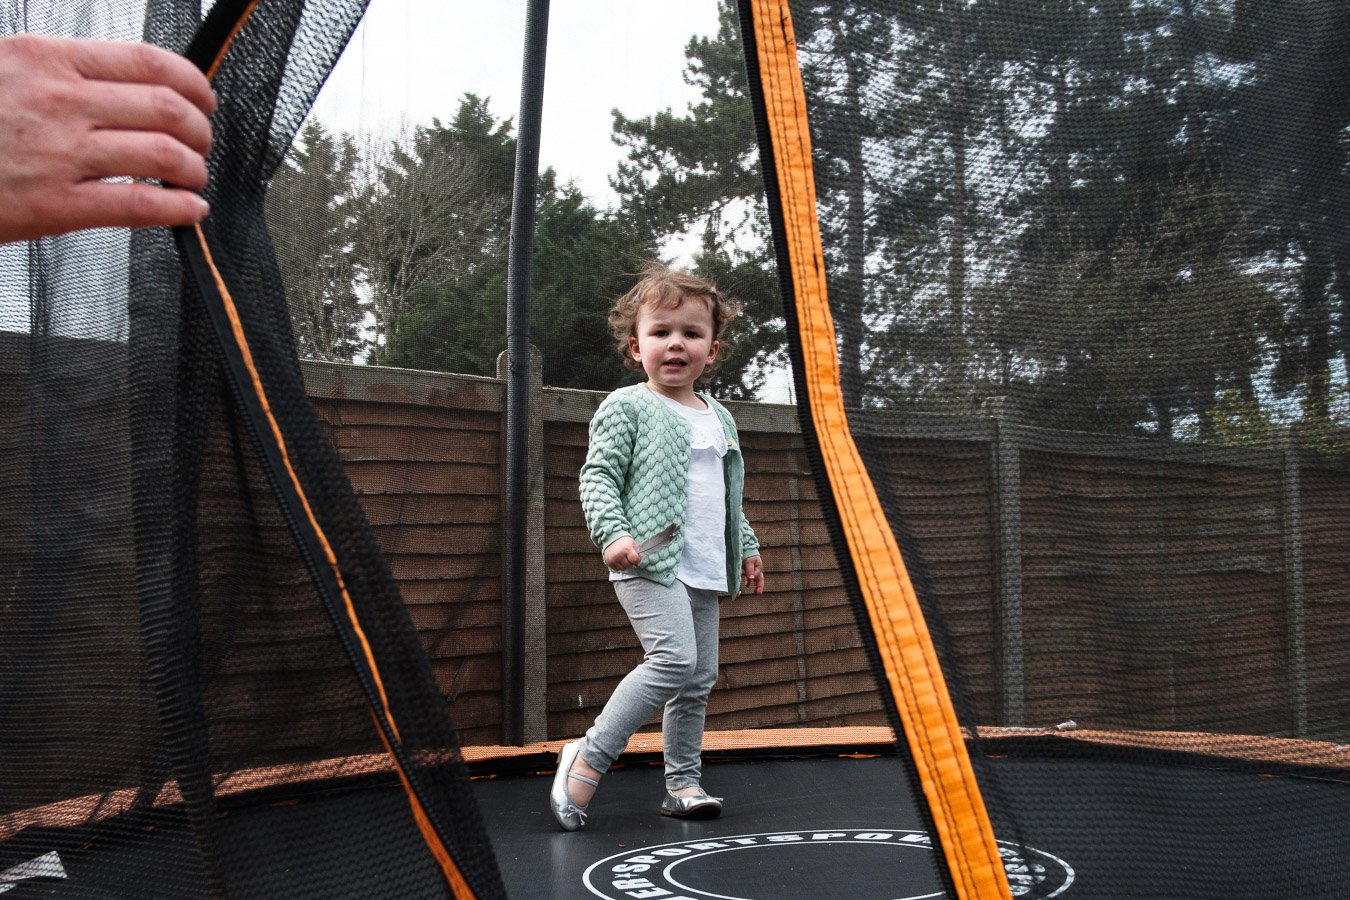 Girl standing on trampoline in garden during family photo session.